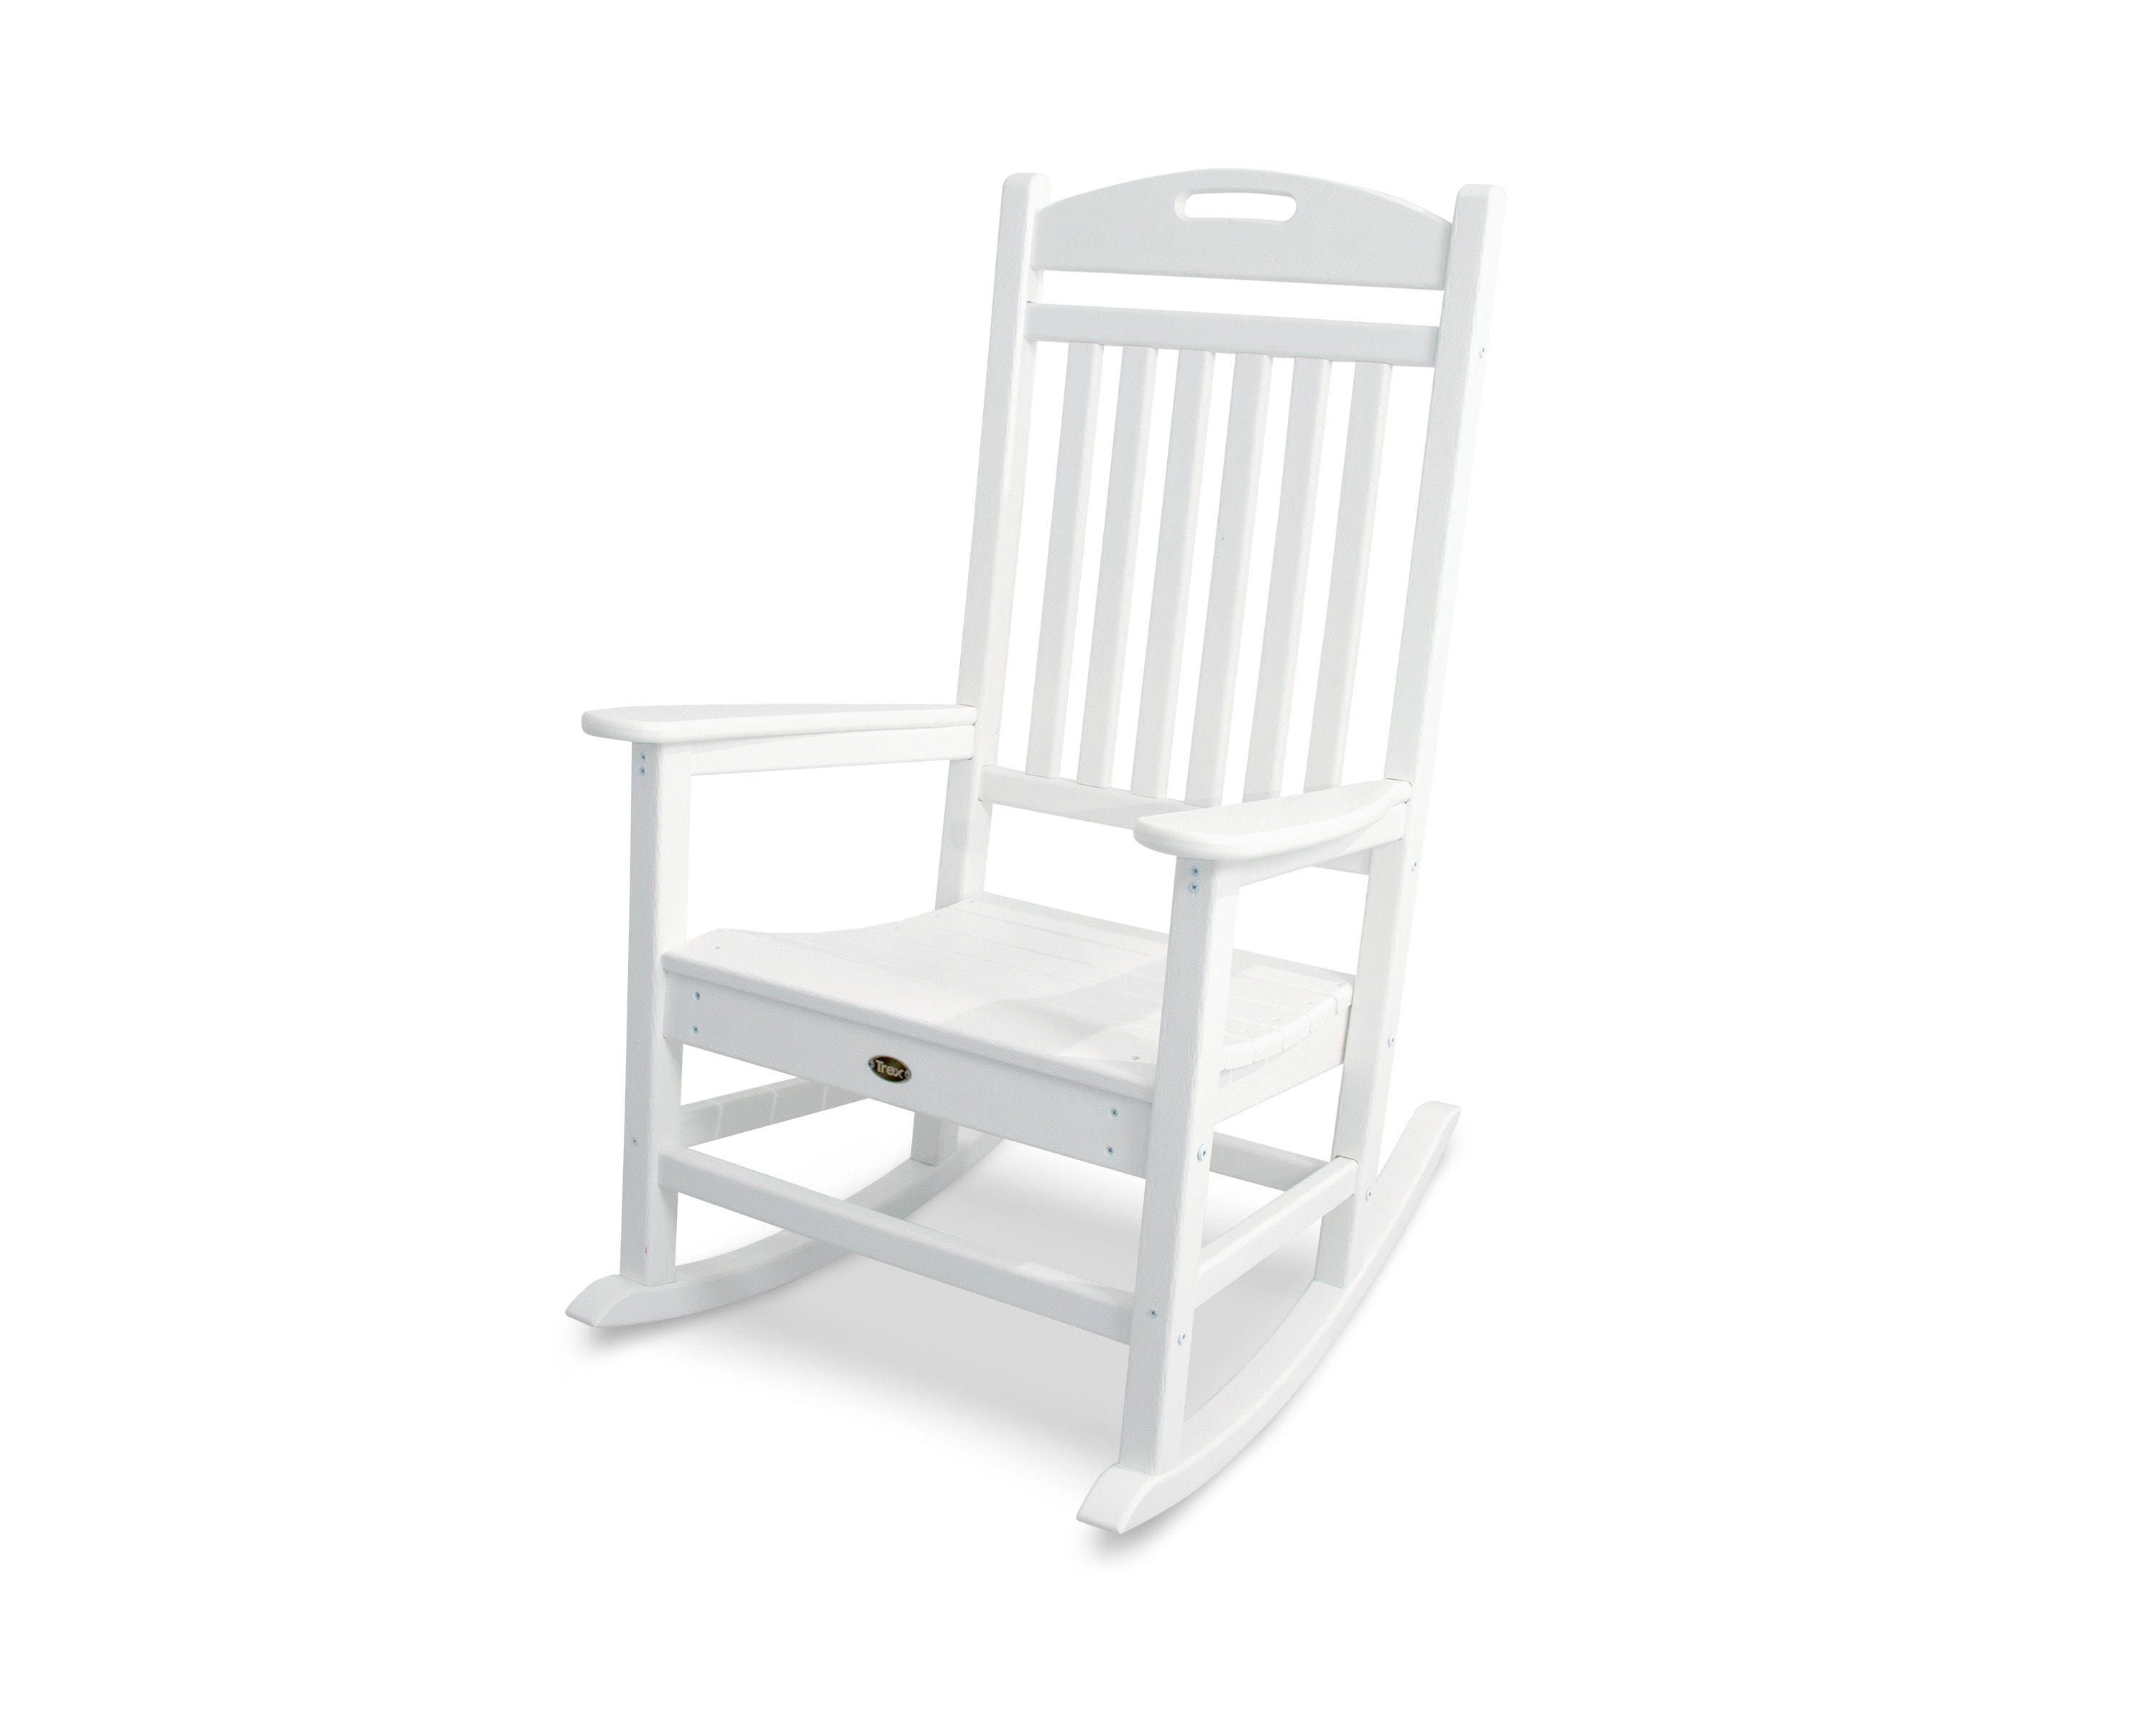 Trex Outdoor Furniture™ Yacht Club Rocking Chair 1 Piece Classic White